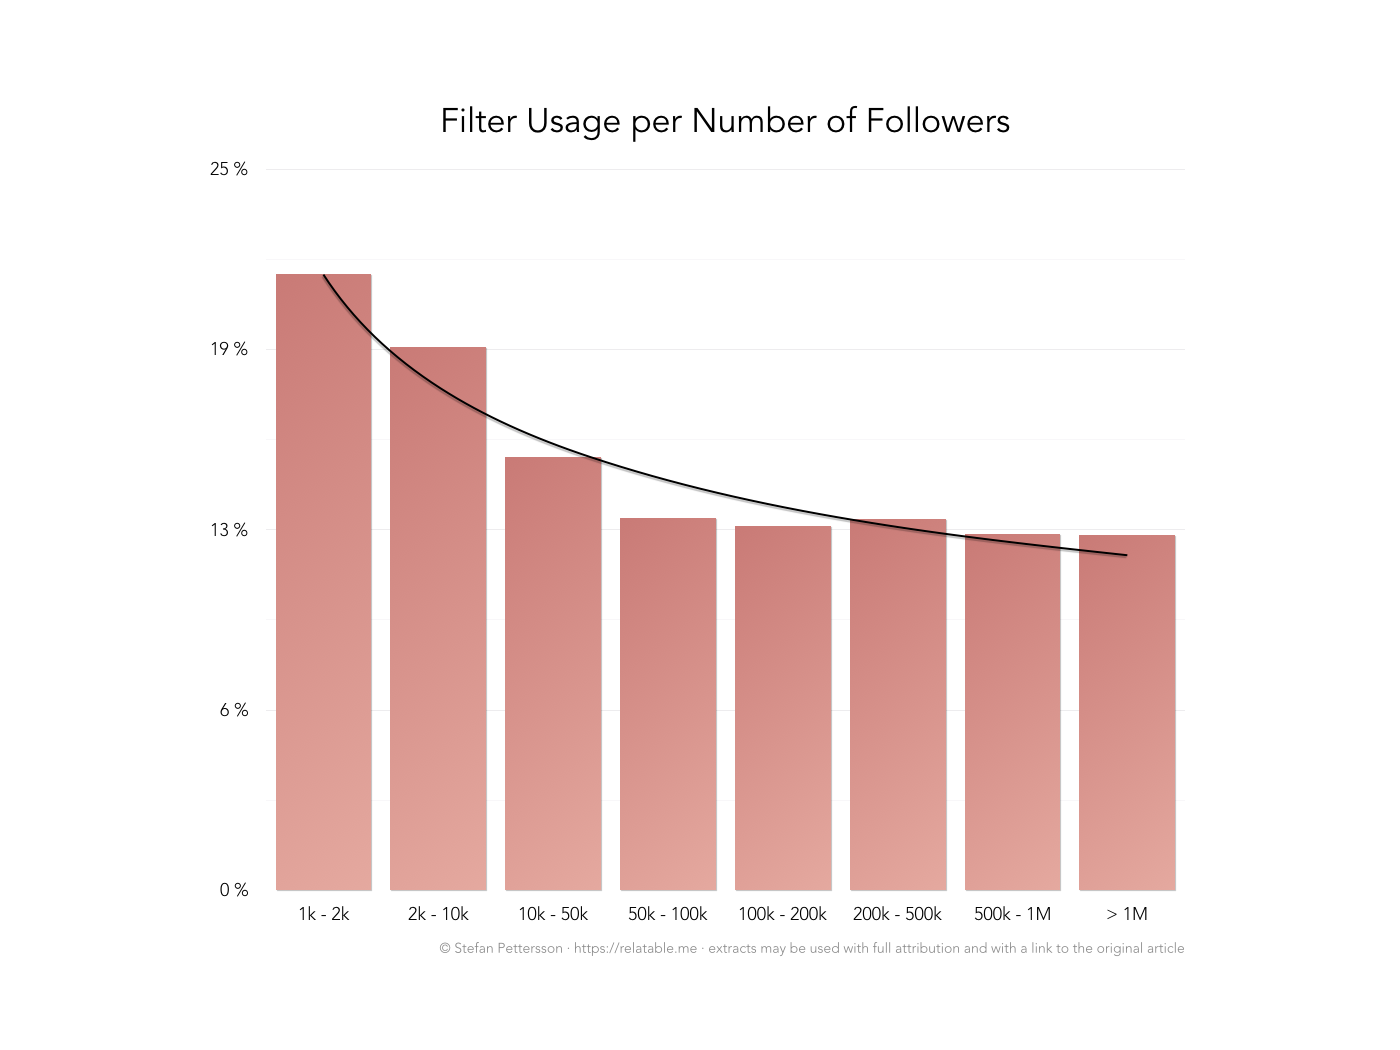 Filter usage of accounts based on accounts' number of followers.